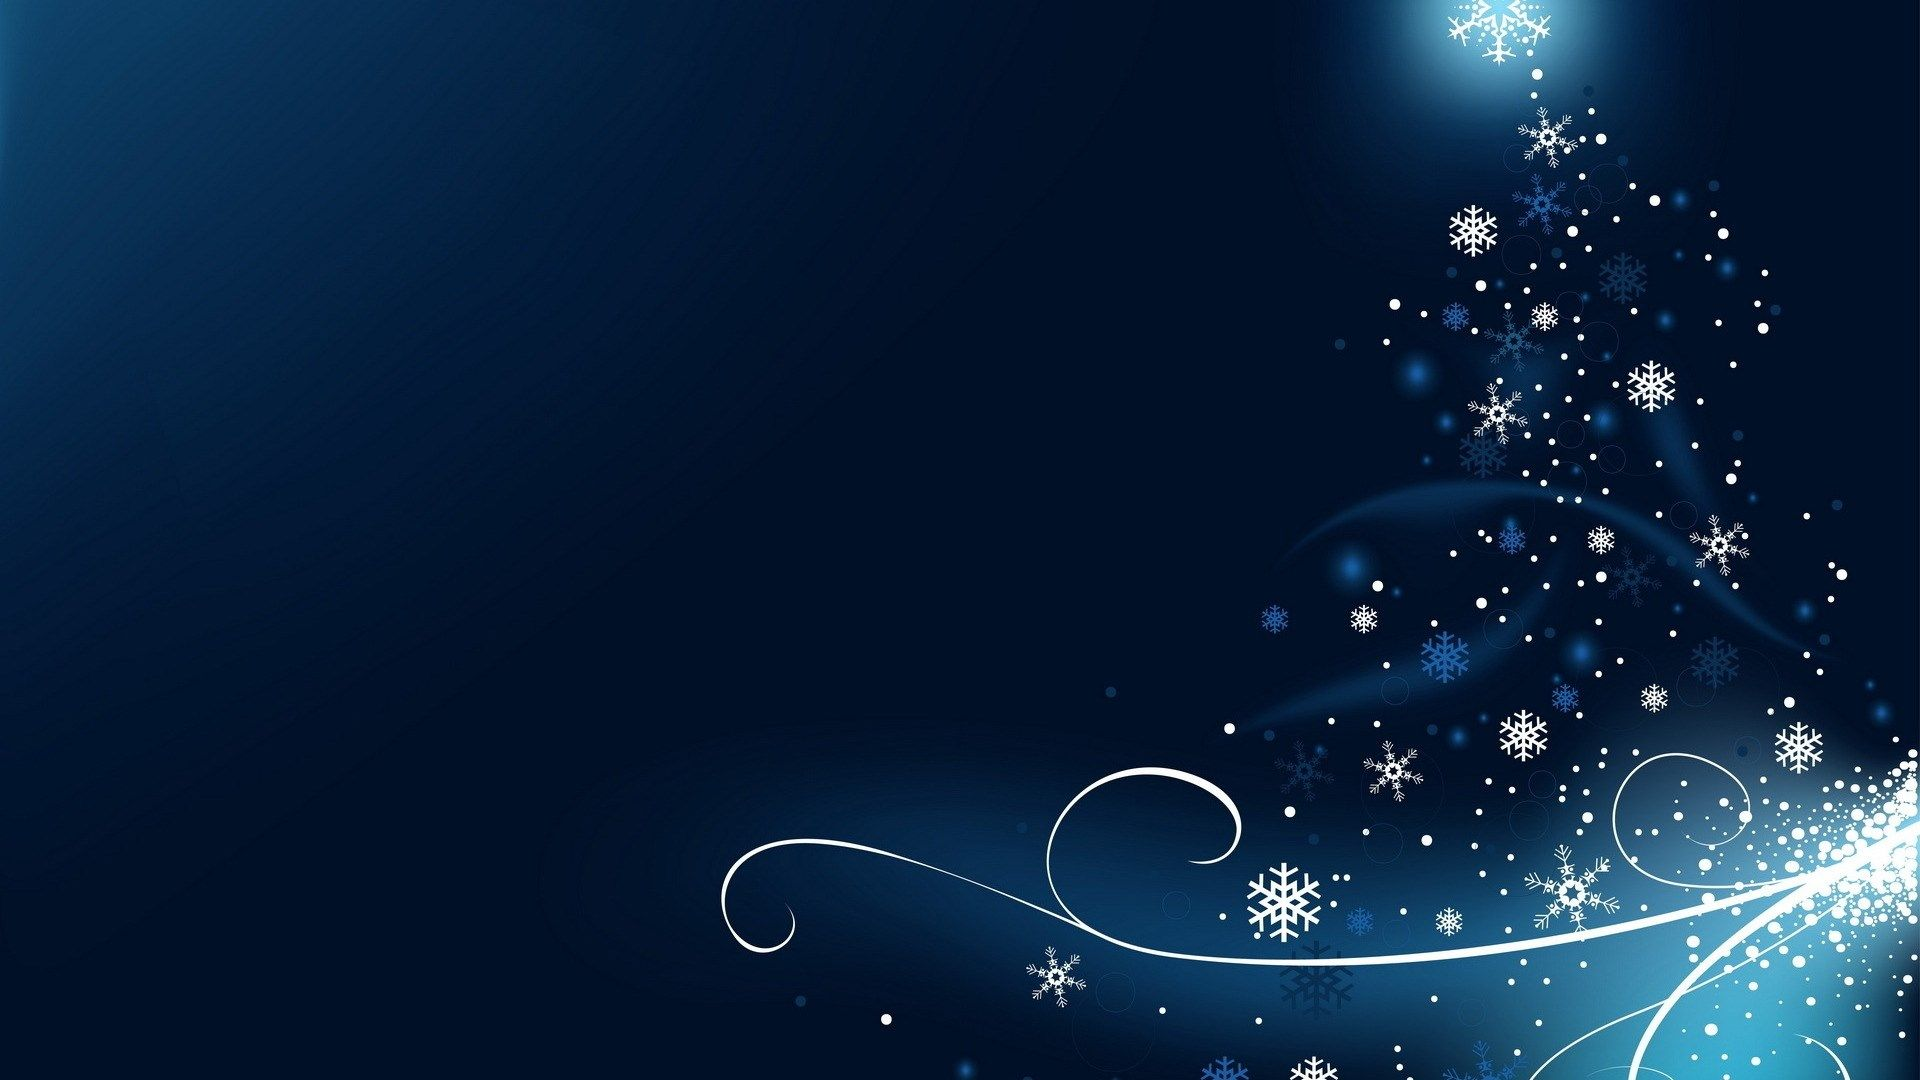 Desktop Snowflake Hd Wallpapers